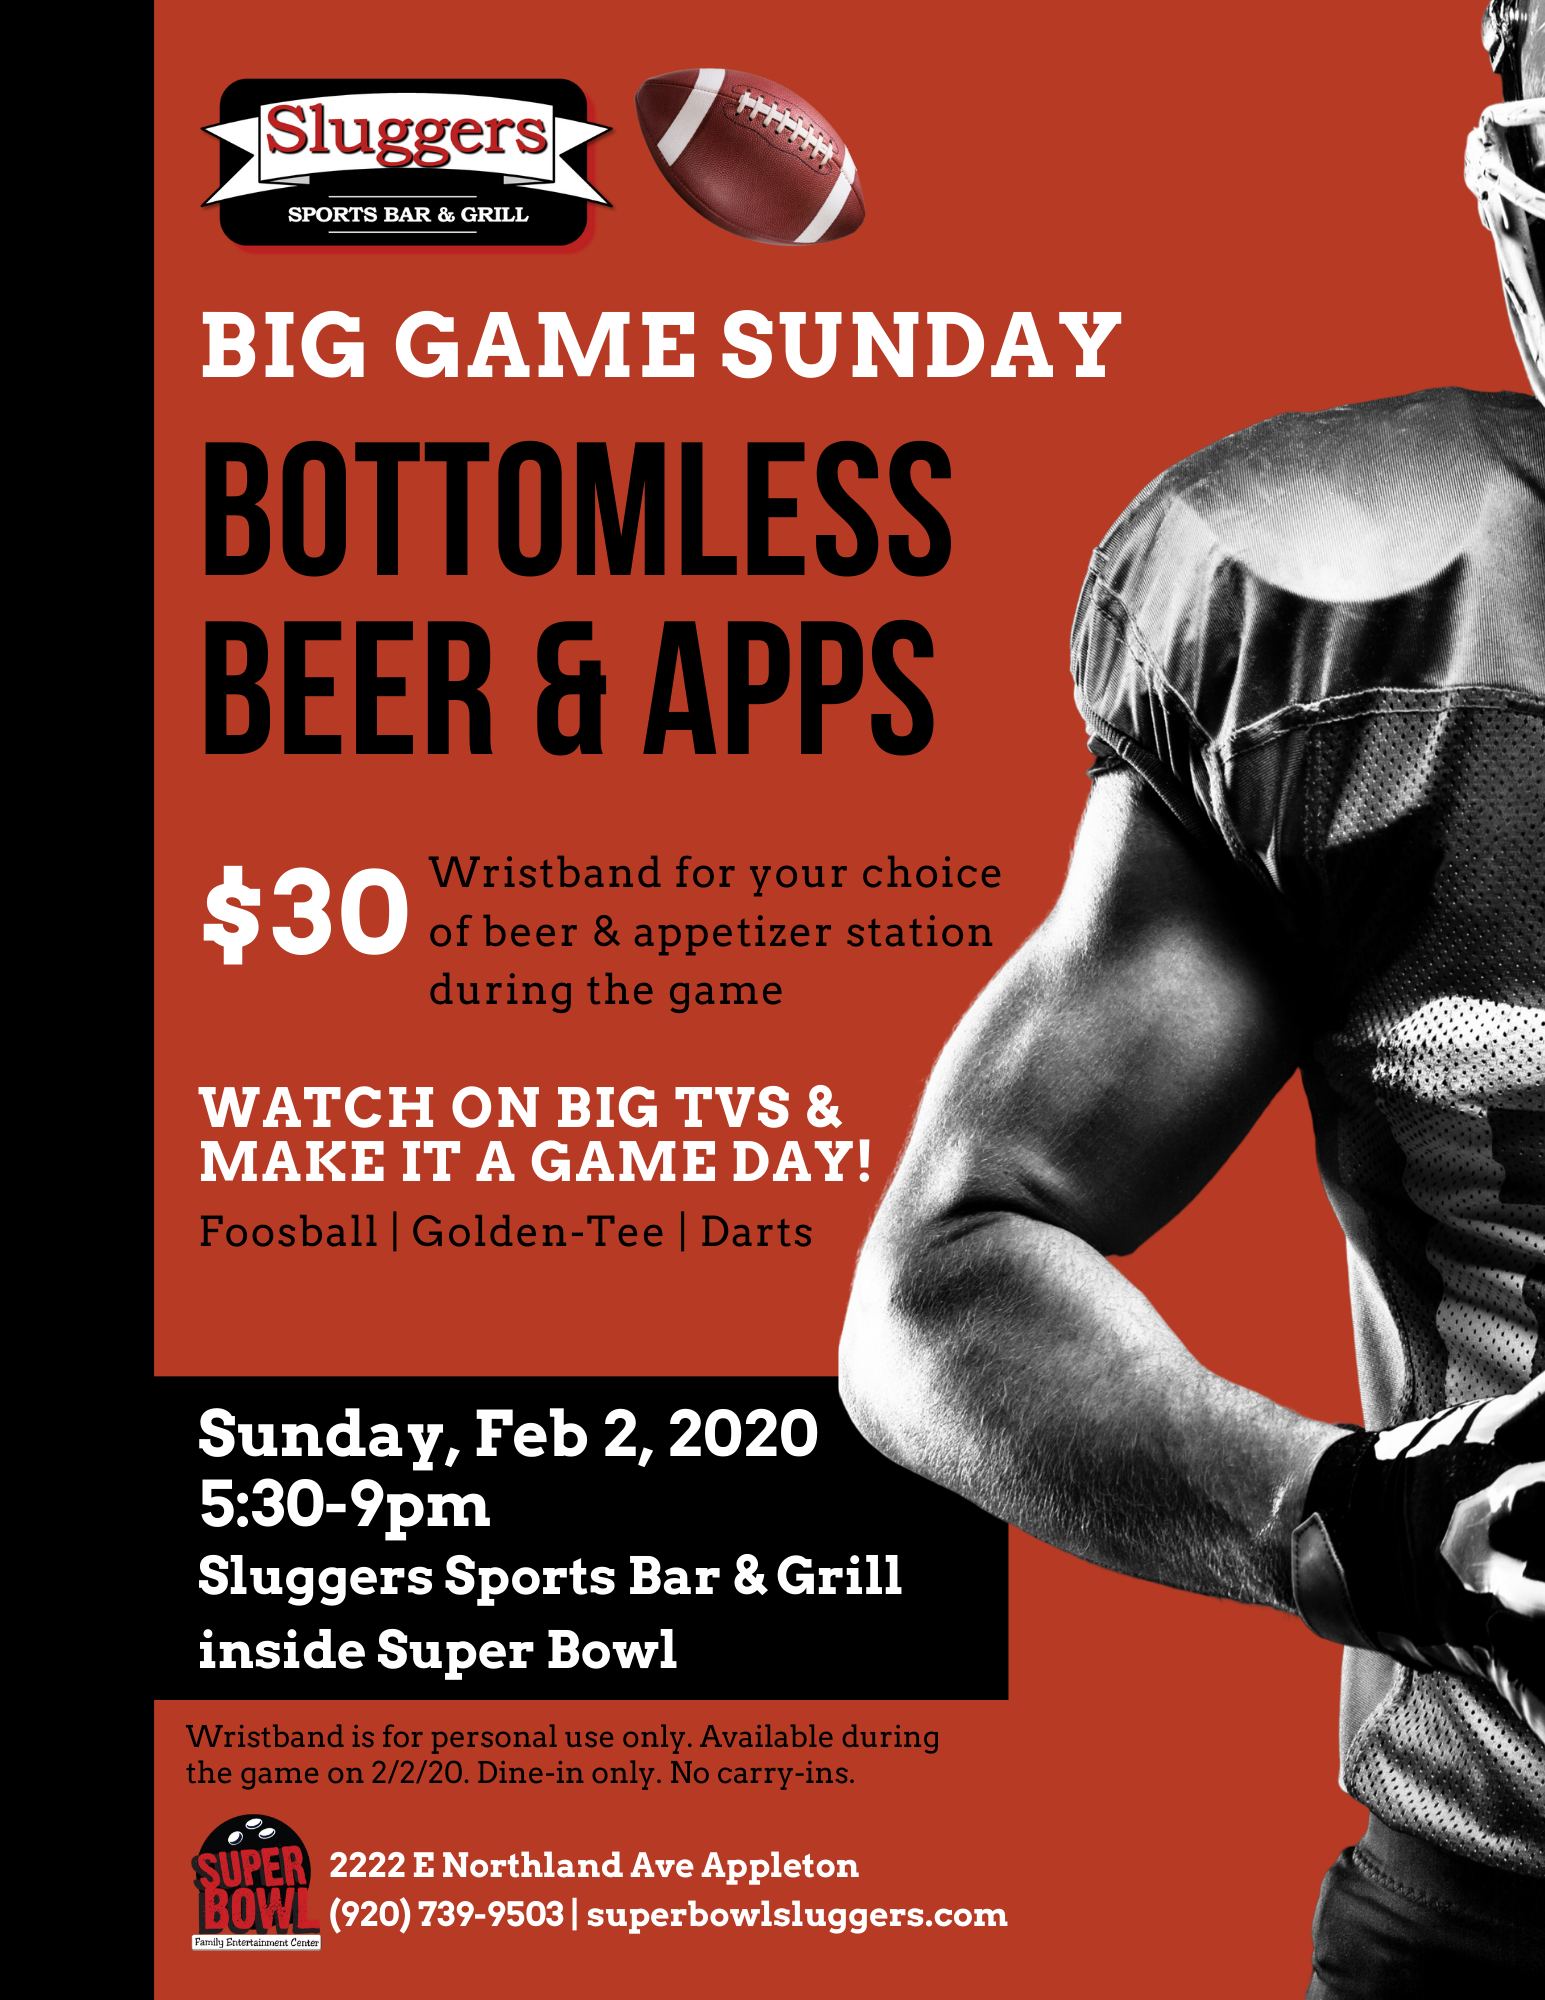 big game sunday | beer and appetizer deal | february 2020 | sluggers sports bar & grill | appleton, wi